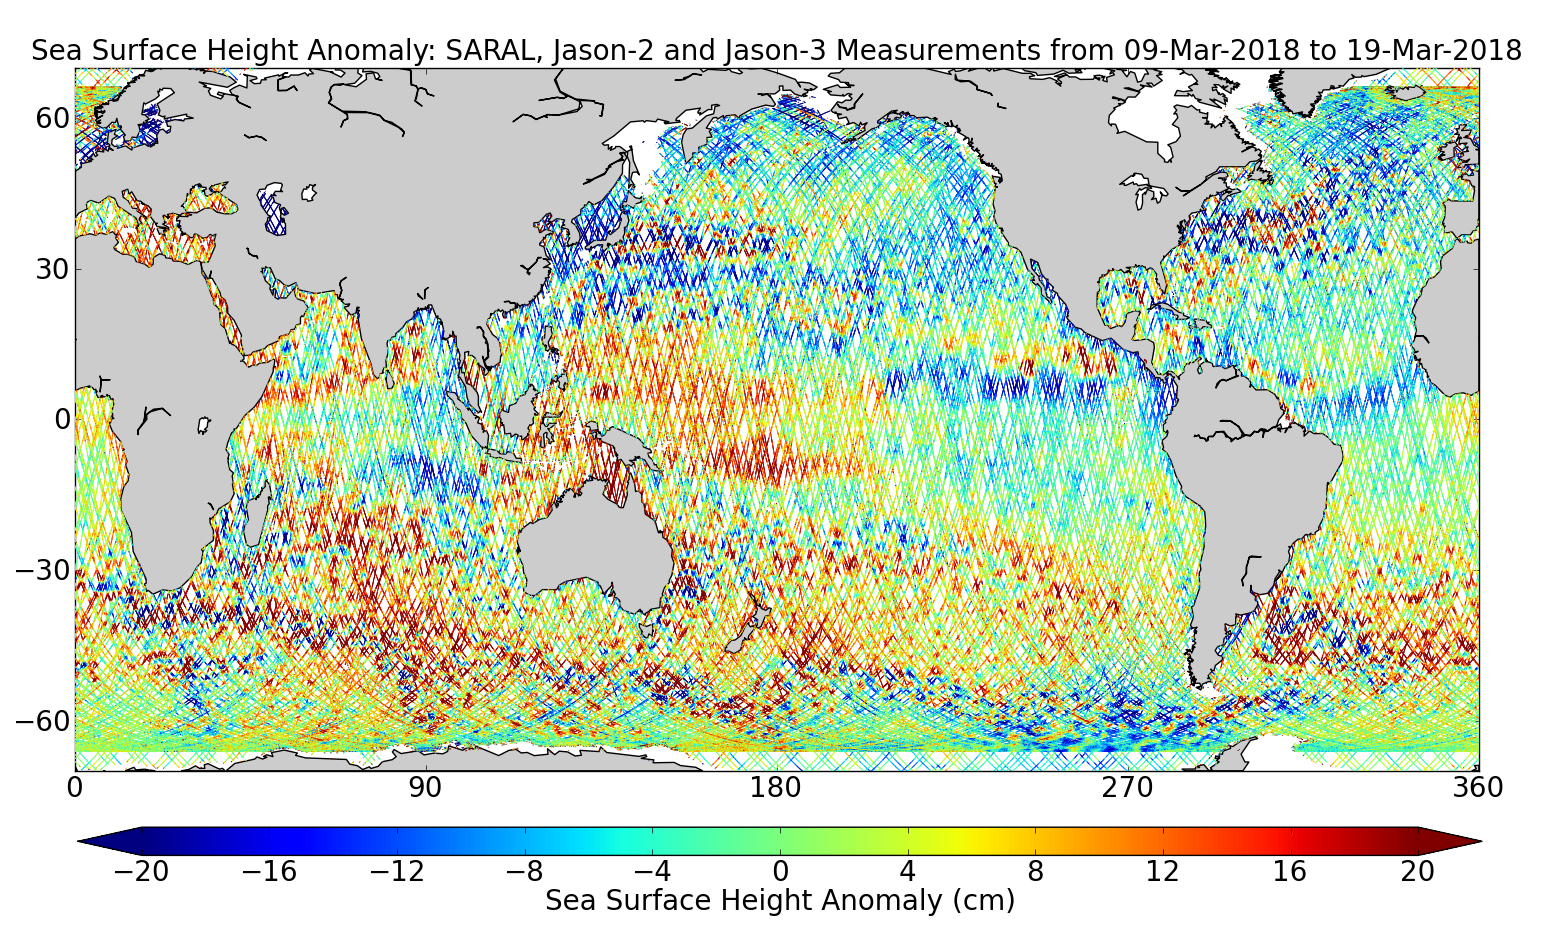 Sea Surface Height Anomaly: SARAL, Jason-2 and Jason-3 Measurements from 09-Mar-2018 to 19-Mar-2018